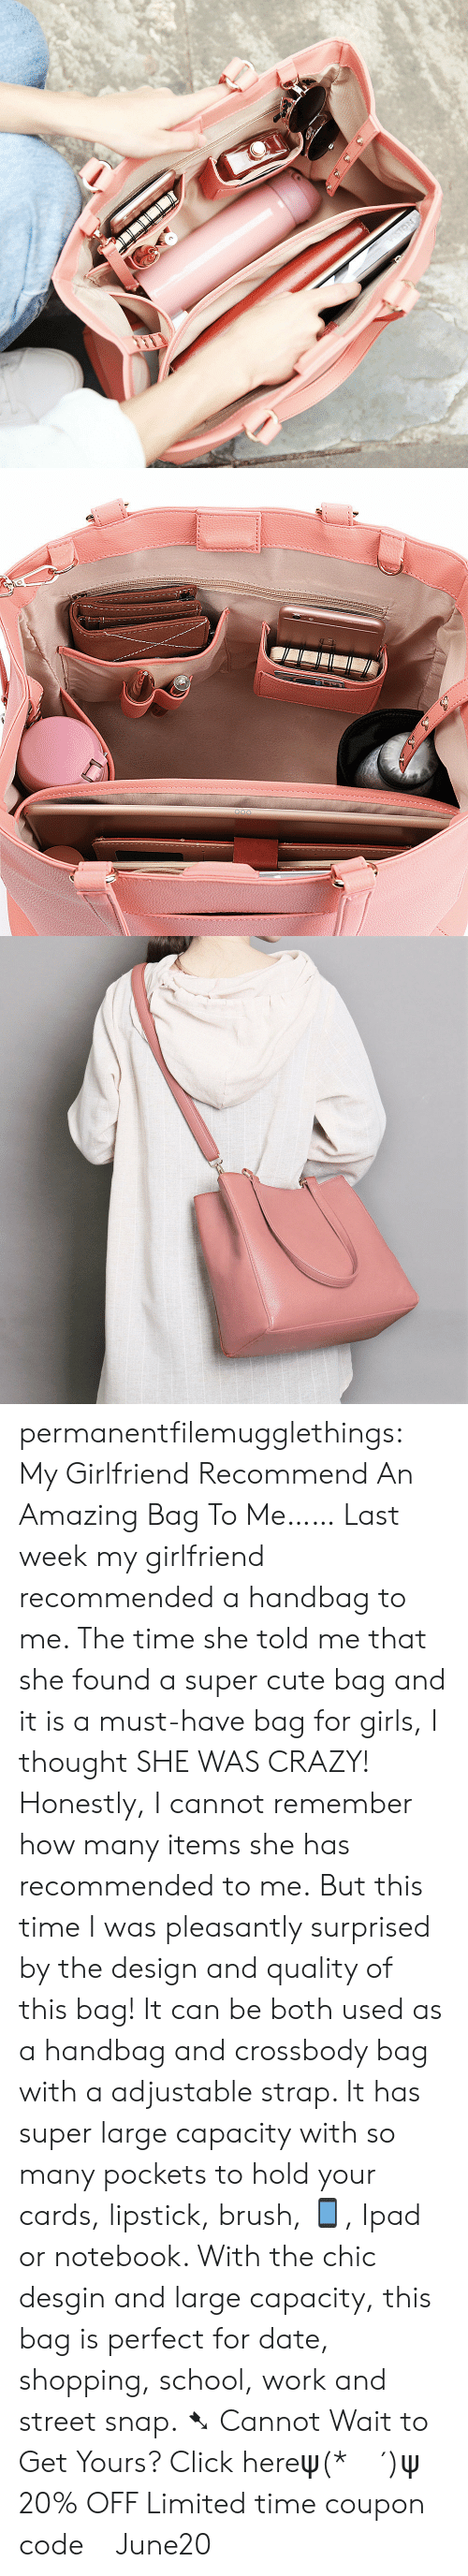 handbag: permanentfilemugglethings: My Girlfriend Recommend An Amazing Bag To Me…… Last week my girlfriend recommended a handbag to me. The time she told me that she found a super cute bag and it is a must-have bag for girls, I thought SHE WAS CRAZY! Honestly, I cannot remember how many items she has recommended to me. But this time I was pleasantly surprised by the design and quality of this bag! It can be both used as a handbag and crossbody bag with a adjustable strap. It has super large capacity with so many pockets to hold your cards, lipstick, brush, 📱, Ipad or notebook. With the chic desgin and large capacity, this bag is perfect for date, shopping, school, work and street snap. ➷ Cannot Wait to Get Yours? Click hereψ(*`ー´)ψ 20% OFF Limited time coupon code : June20